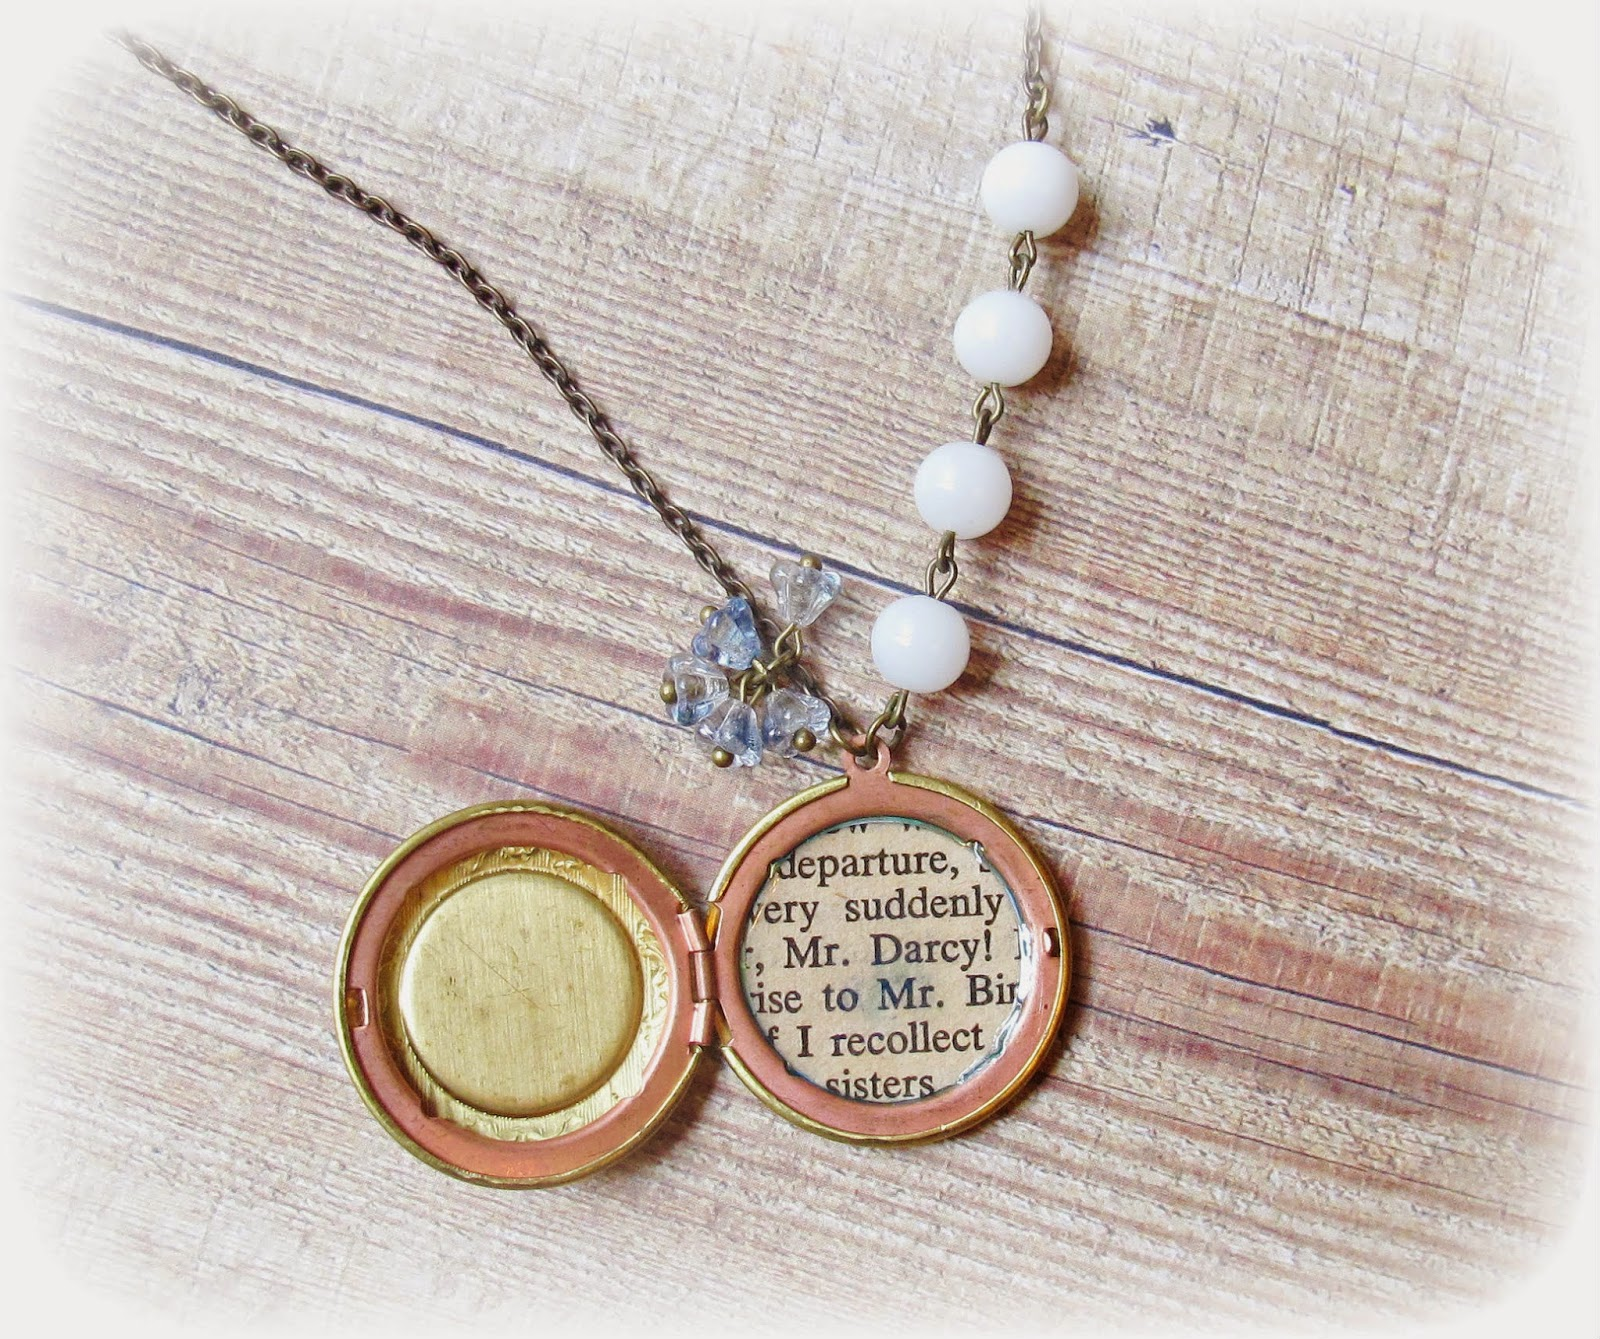 image mr darcy locket necklace pride and prejudice jane austen brass blue white vintage